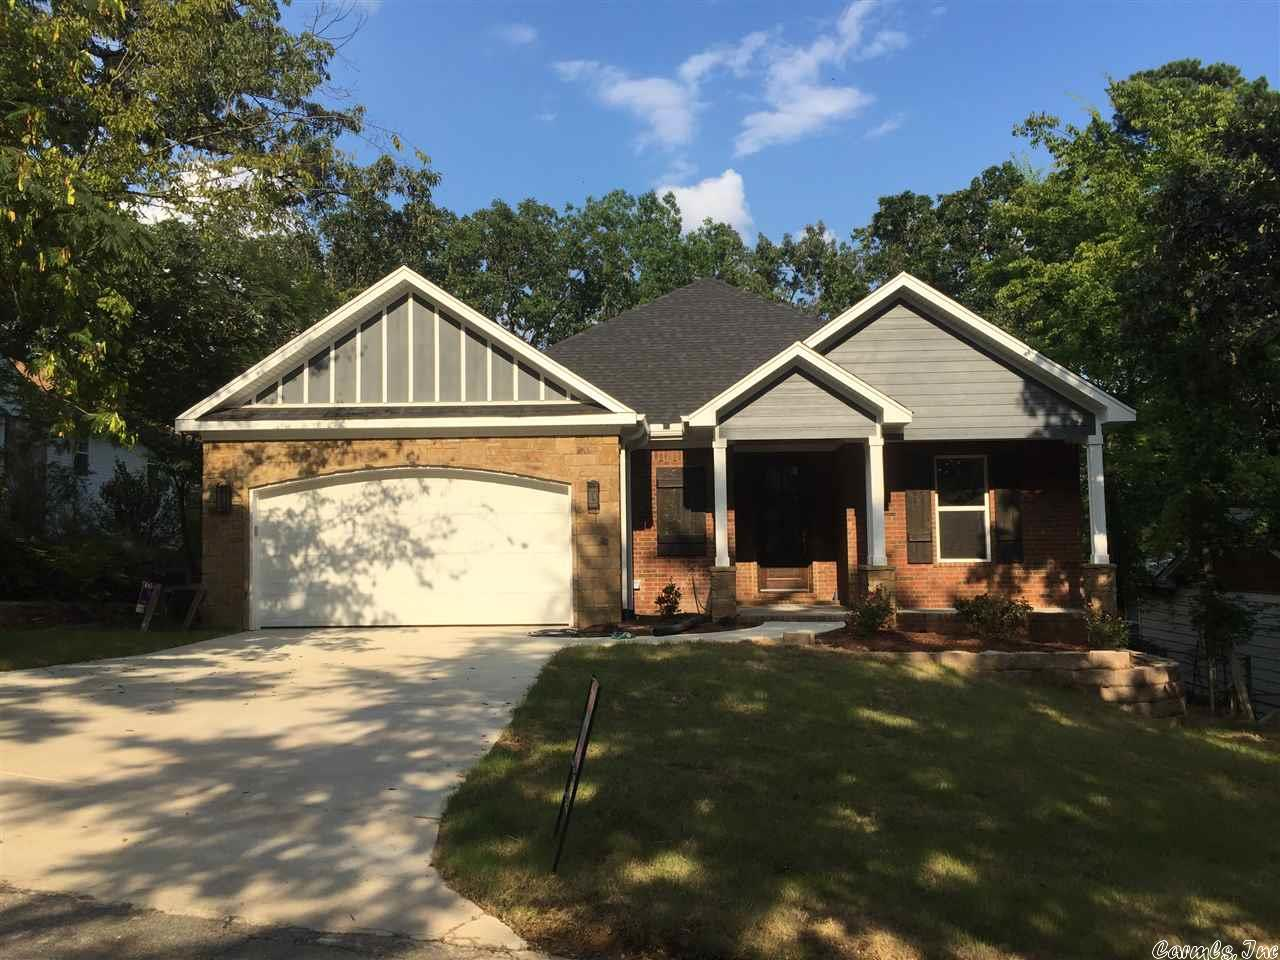 609 N Buchanan Street, Little Rock, AR 72205